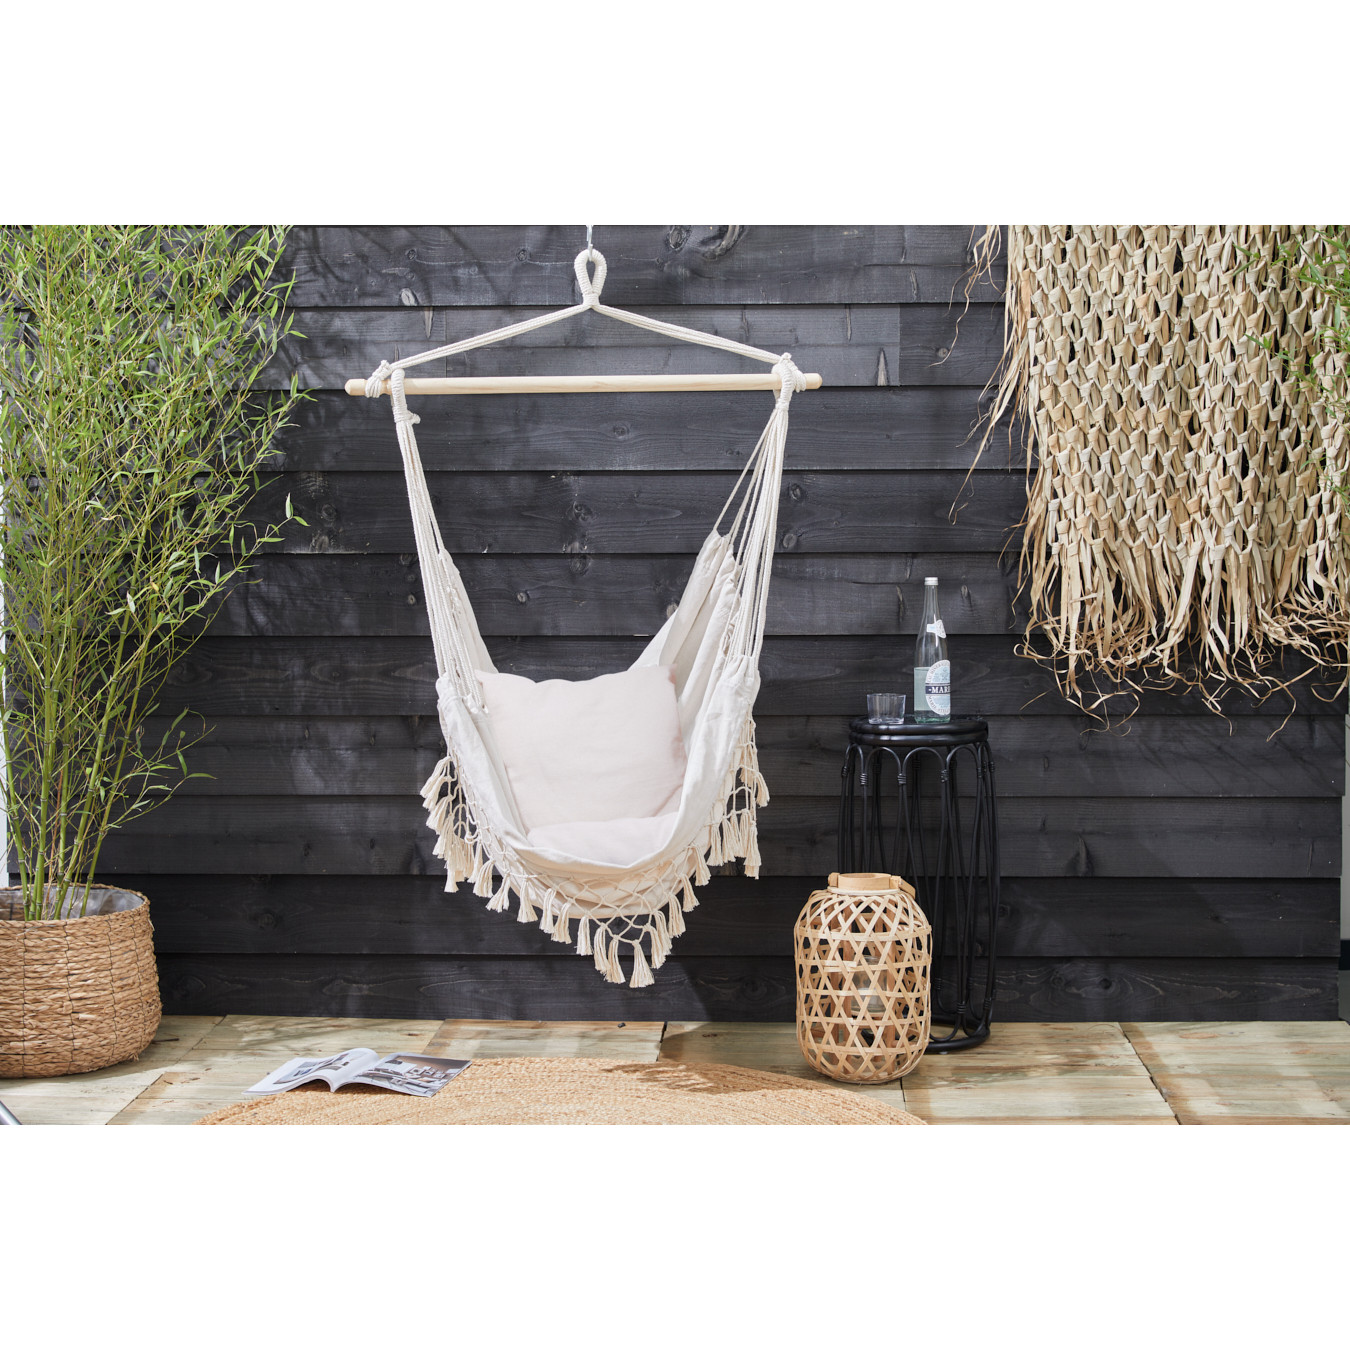 Hanging Chair with Cushions | Ecru